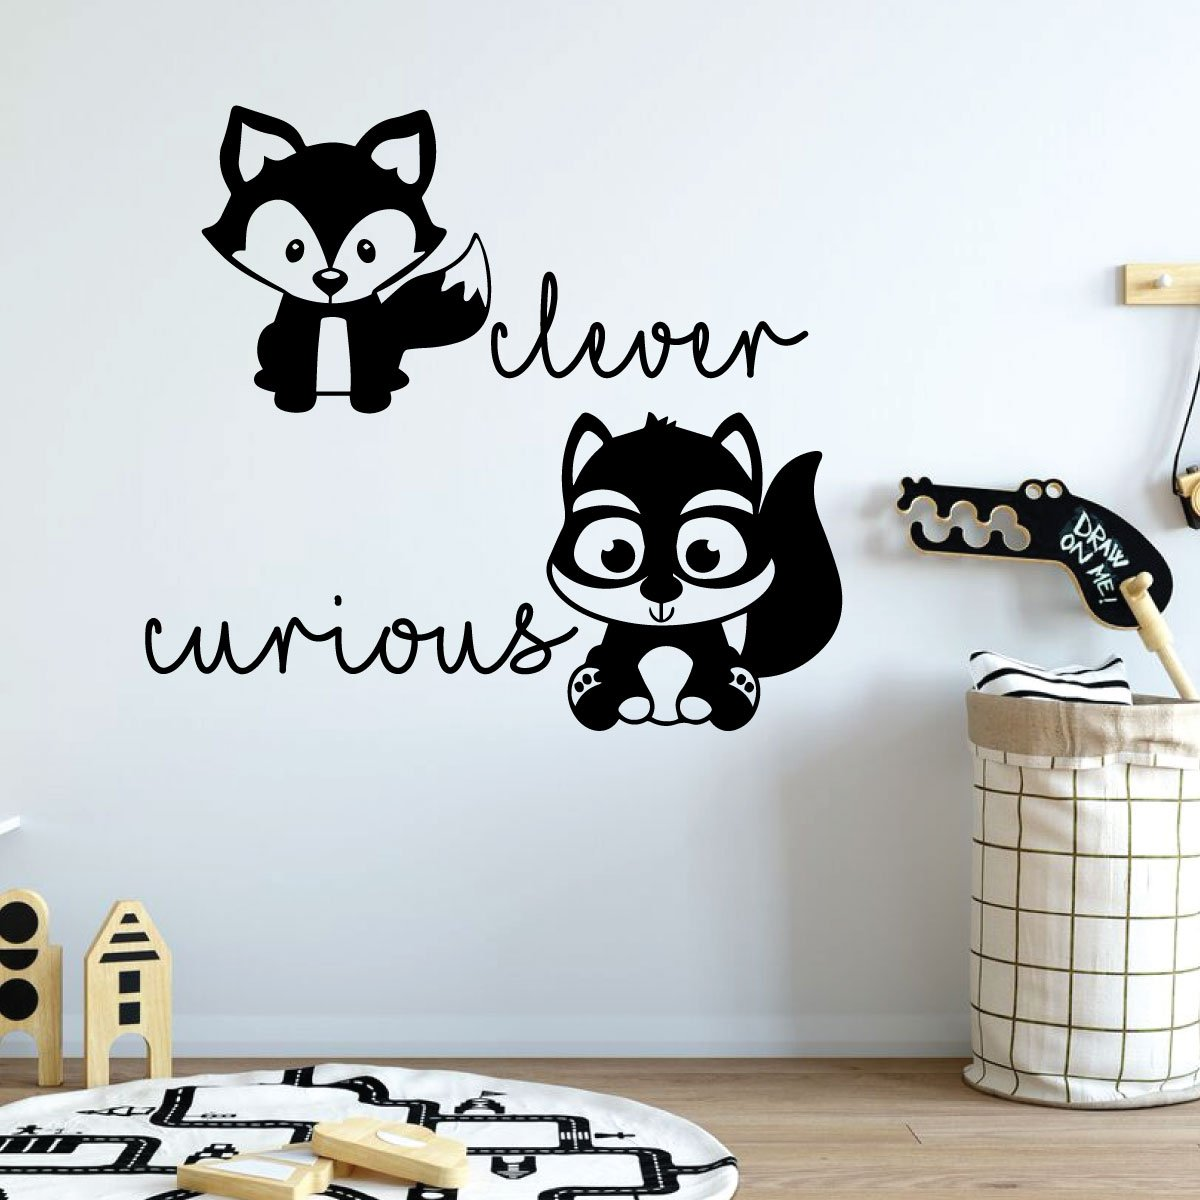 Clever, Curious Fox, Squirrel Wall Decal for Children Bedroom Vinyl Decor